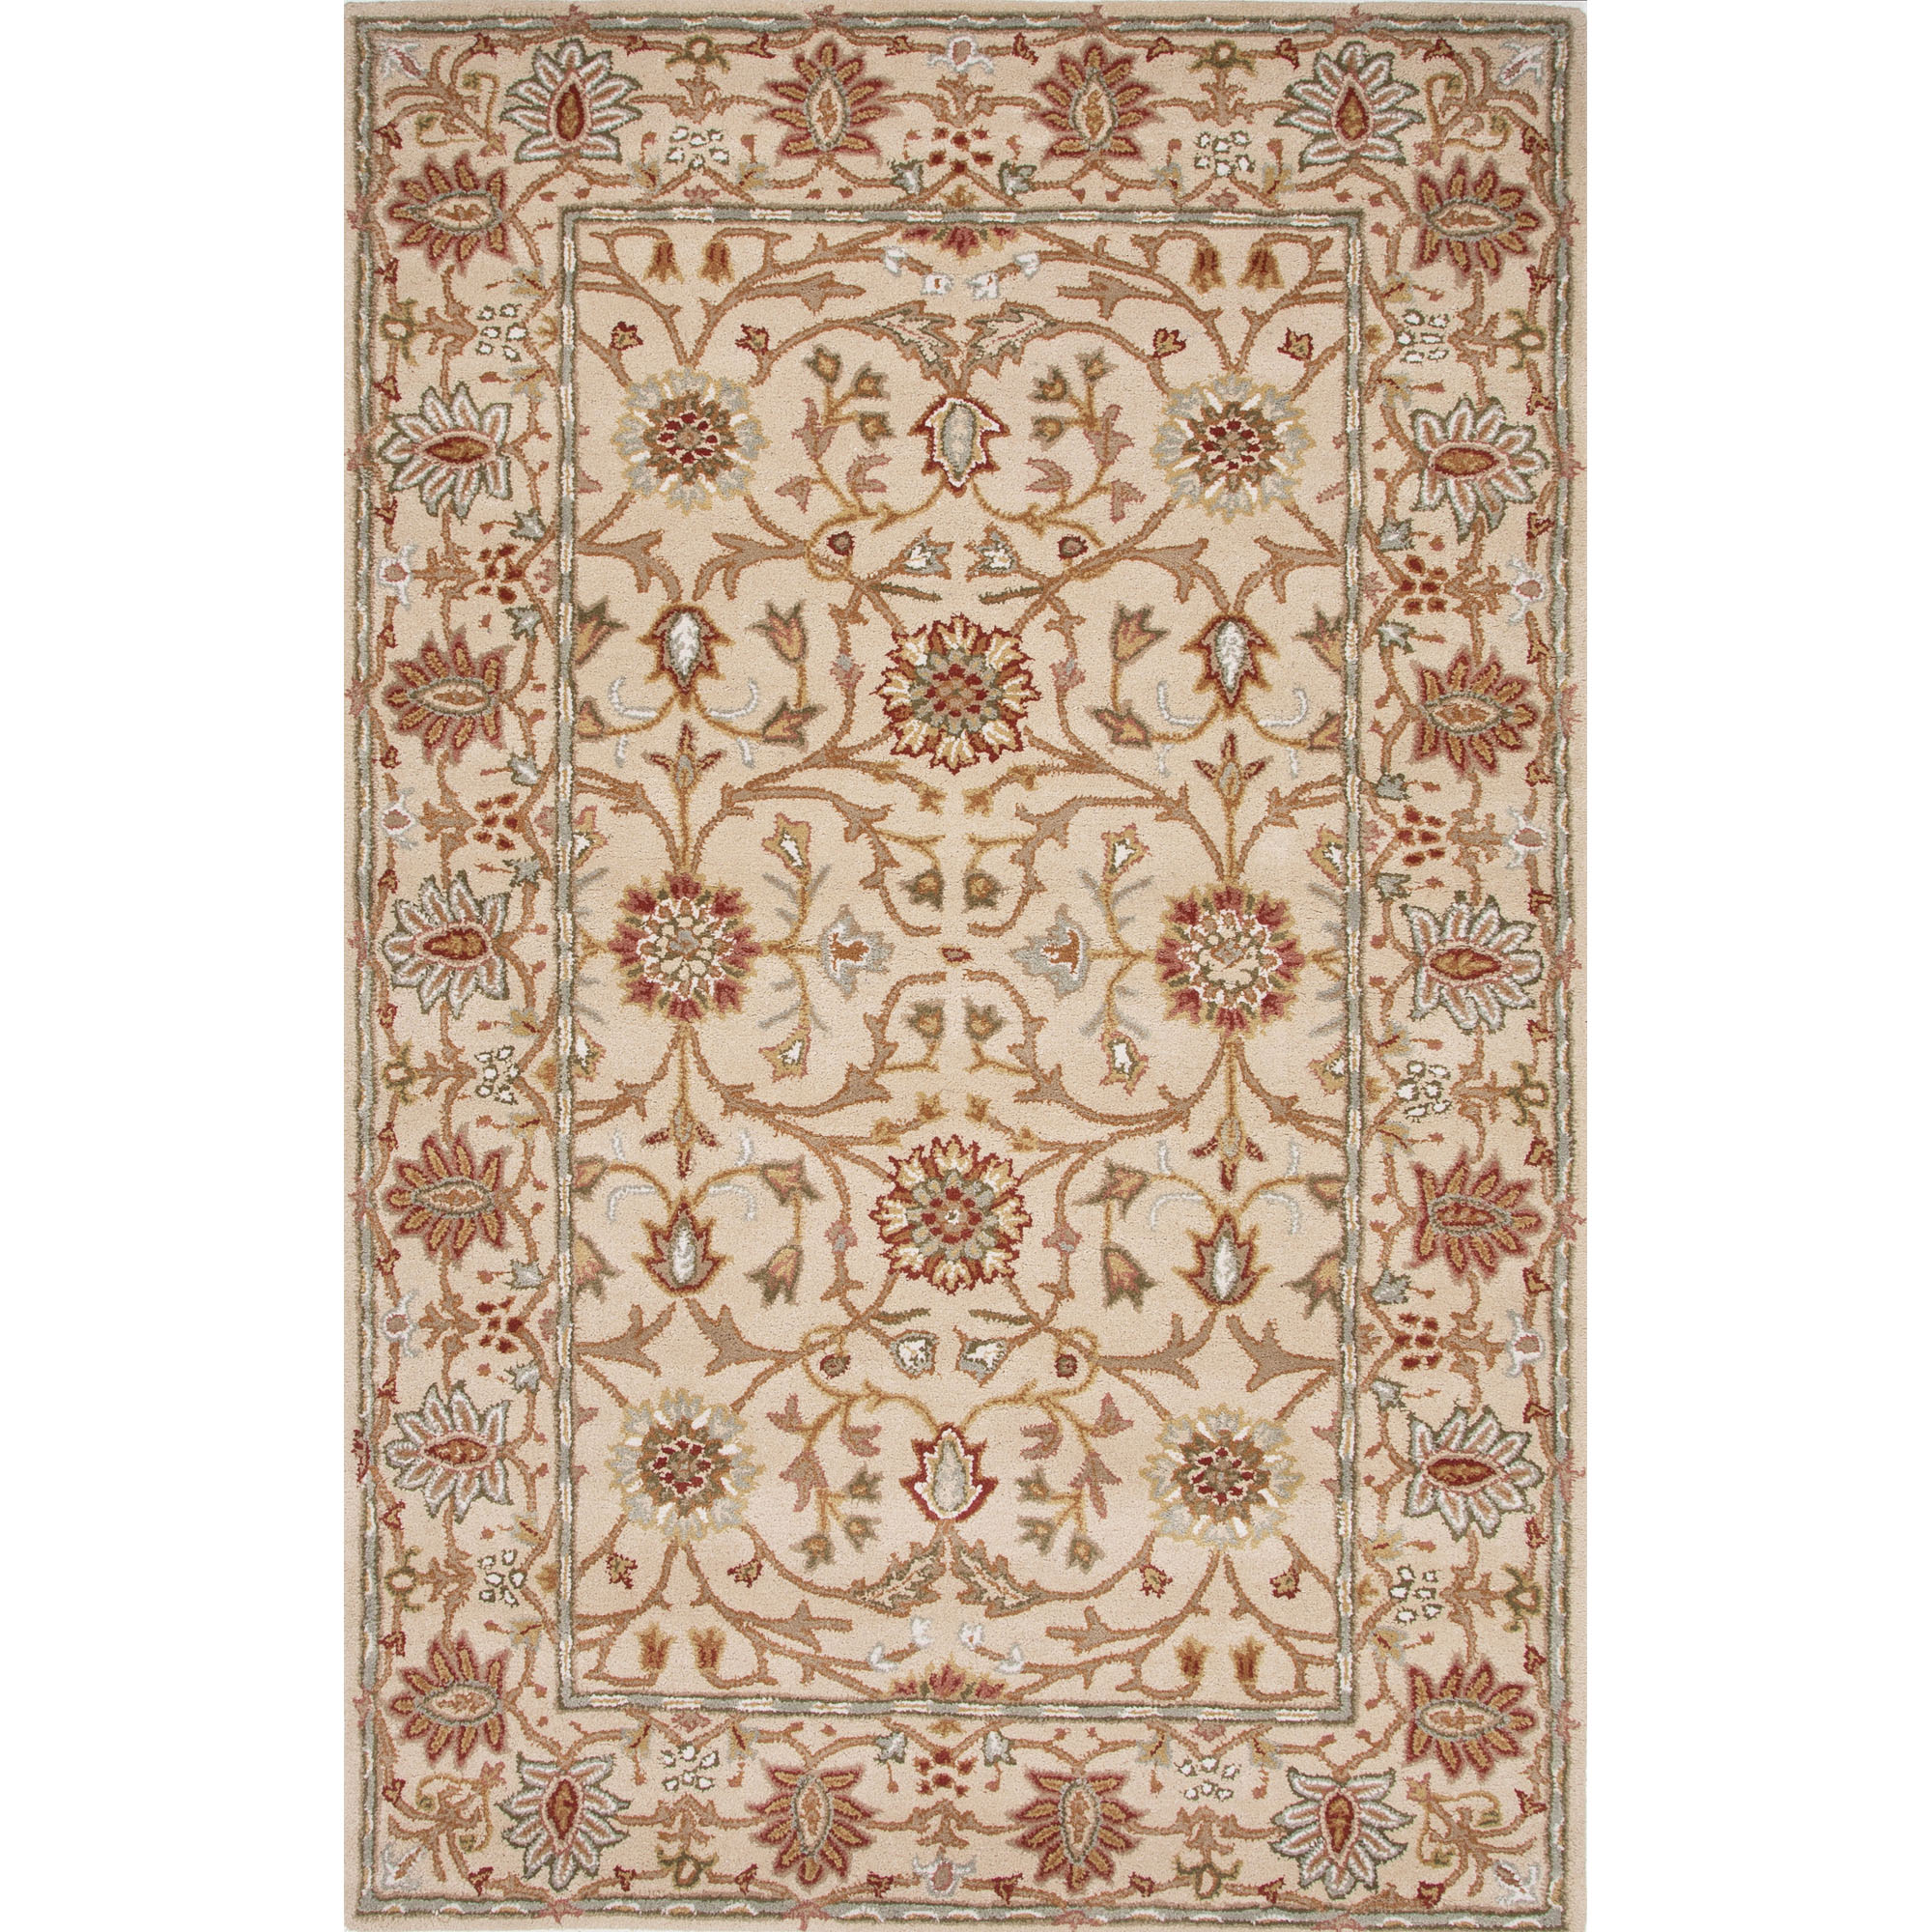 Poeme 8 x 10 Rug by JAIPUR Living at Malouf Furniture Co.